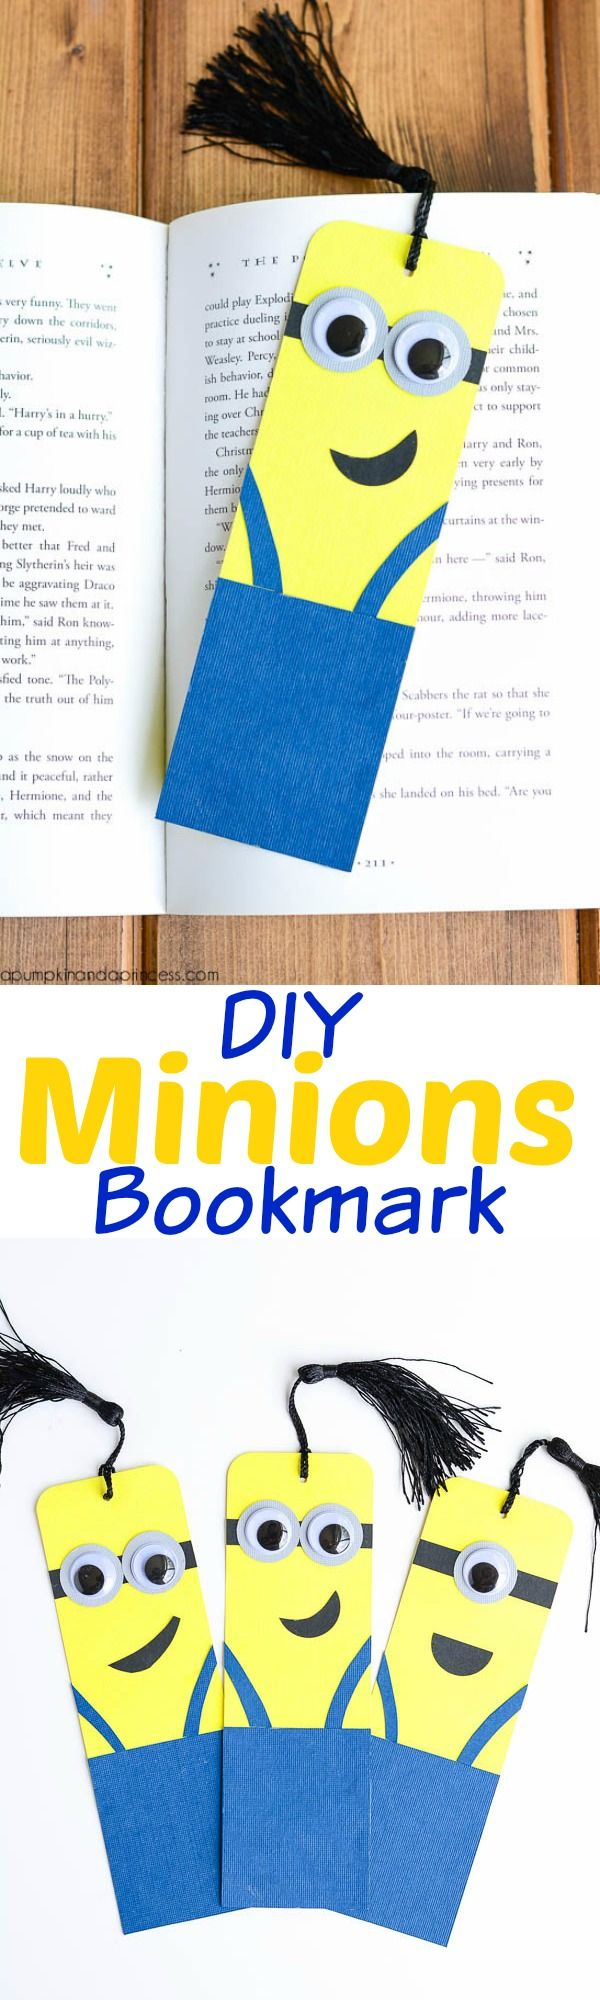 Bookmarks    Pumpkin Minion v  Princess And A   run leopard shoes running DIY free A